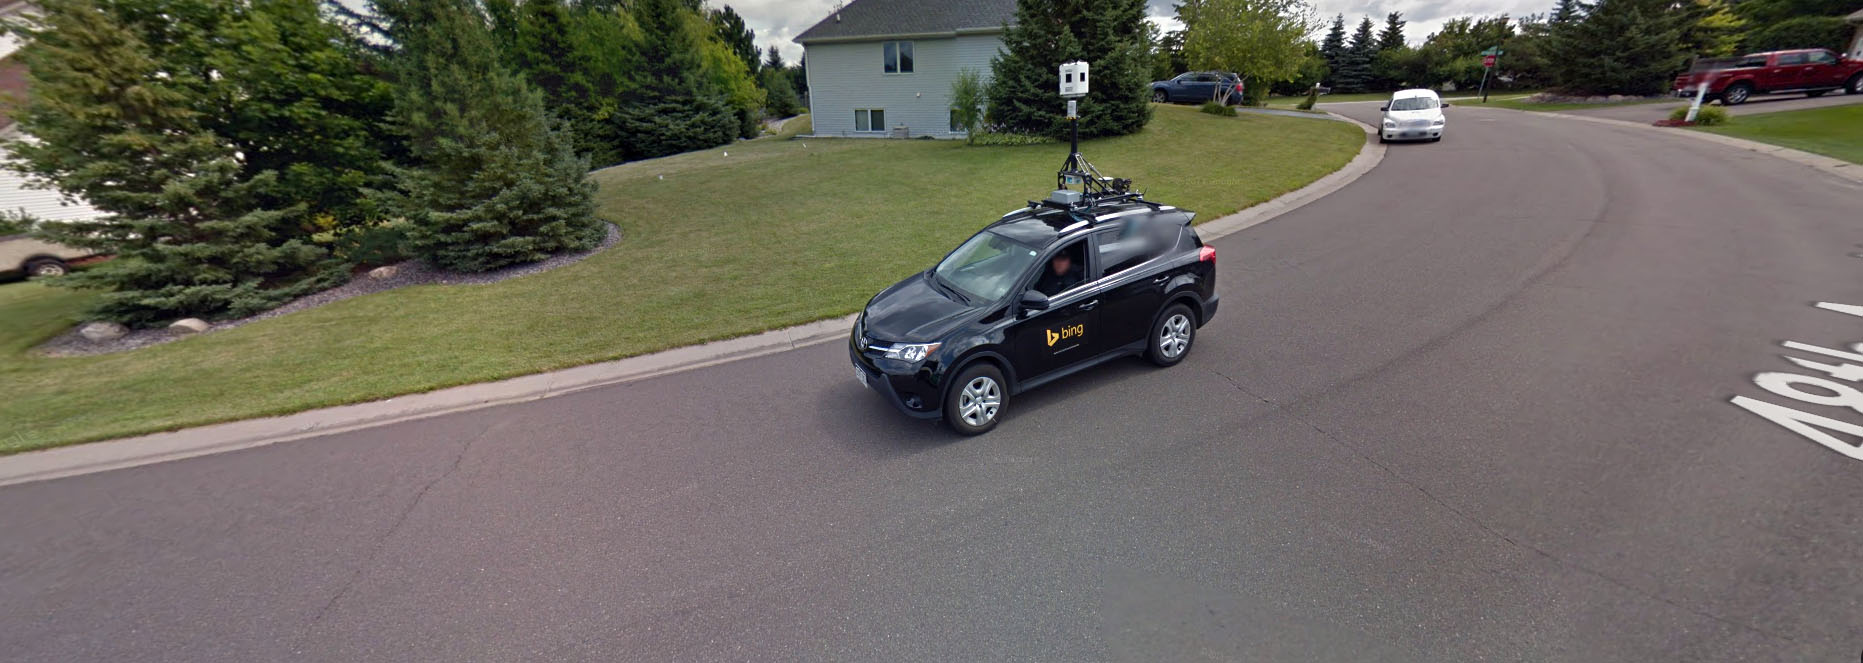 Google And Bing Cars Have Unlikely Run In With Each Other Turf War